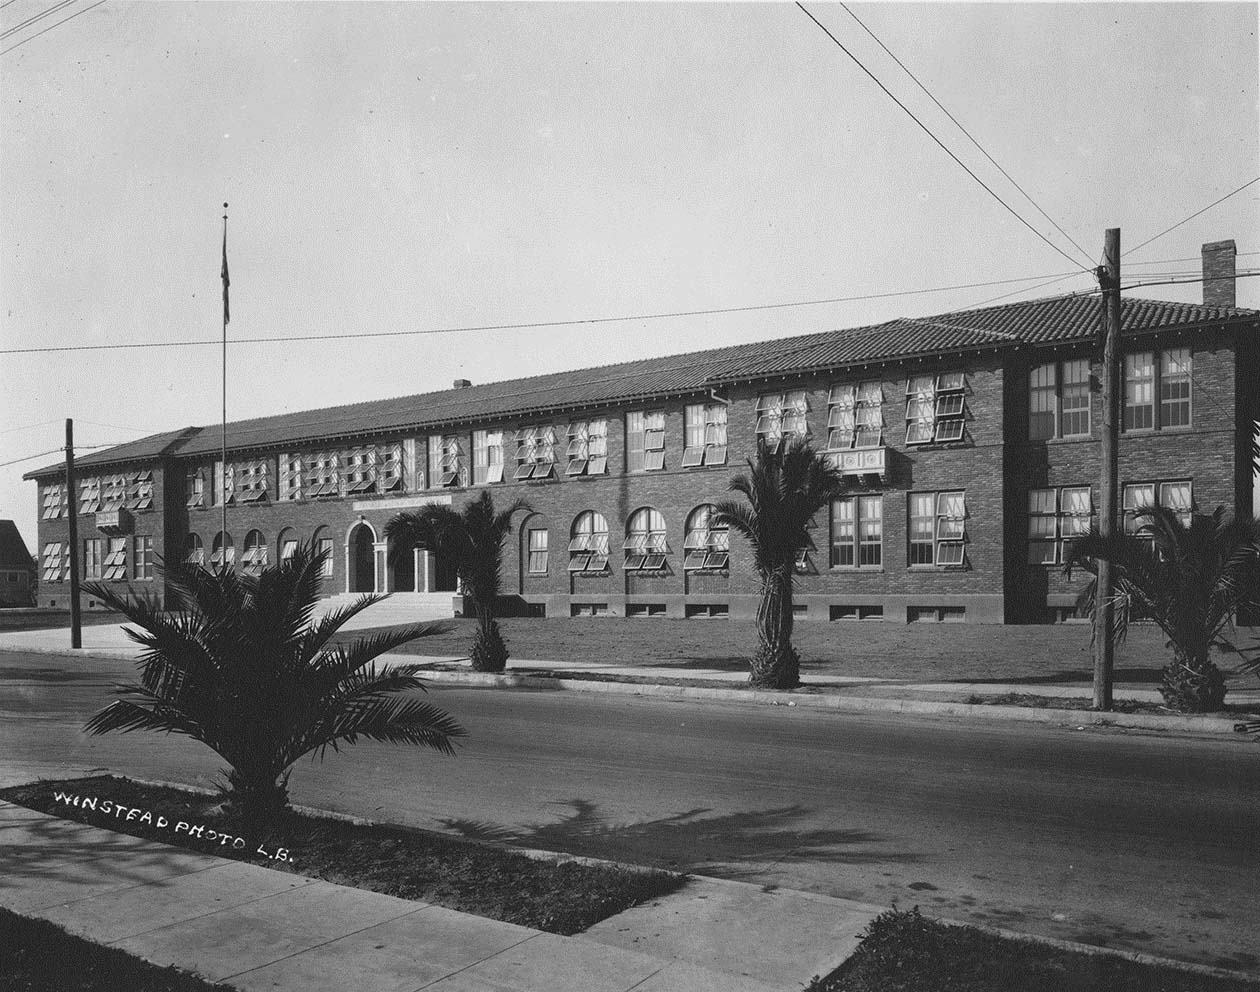 Franklin Jr. High School at 601 Orange Avenue in Long Beach. The school originally opened in September 1922.